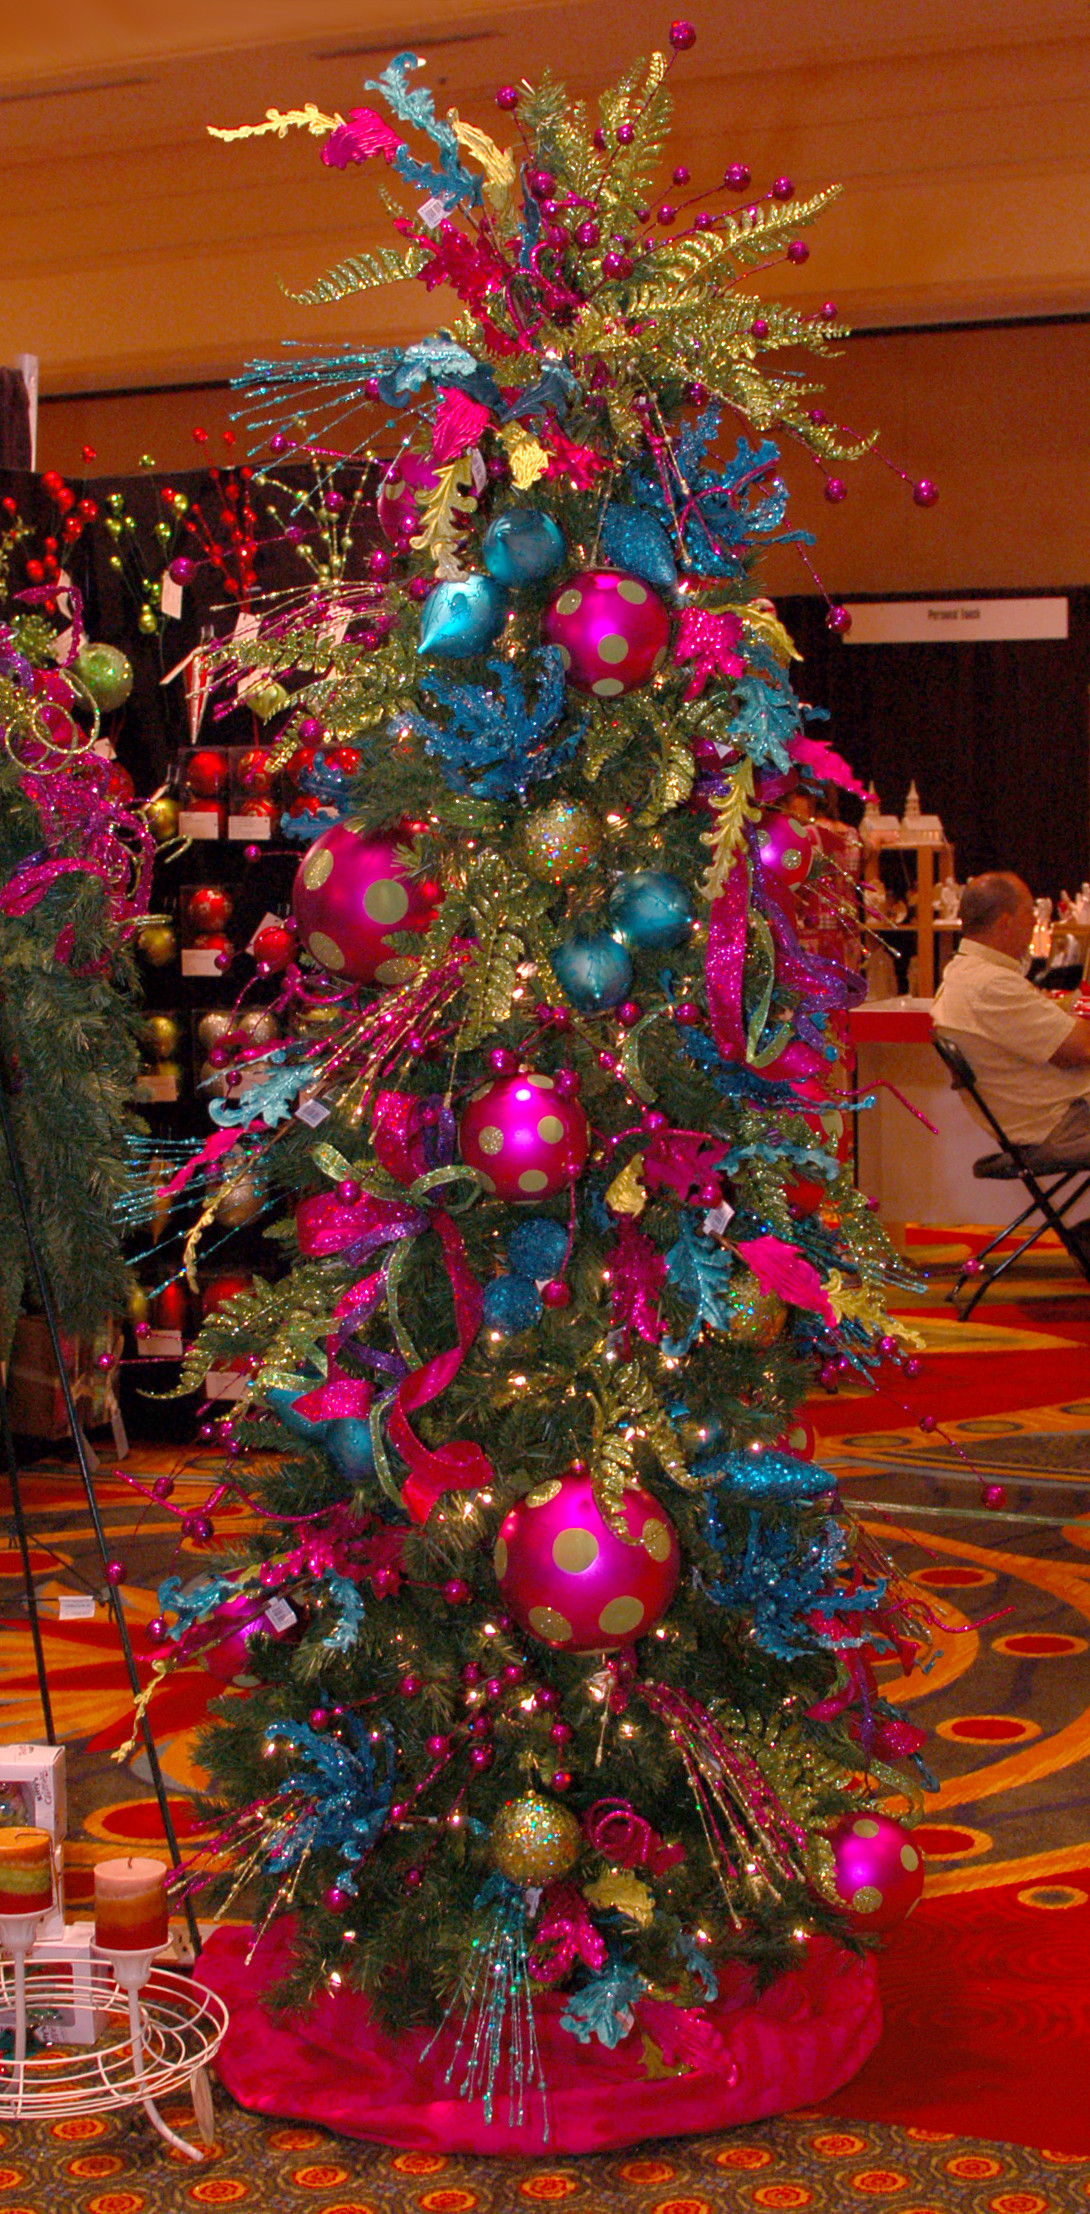 Unusual Christmas Decorations New Unique Christmas Tree Decorating Ideas Christmas 2015 Of Delightful 42 Pictures Unusual Christmas Decorations